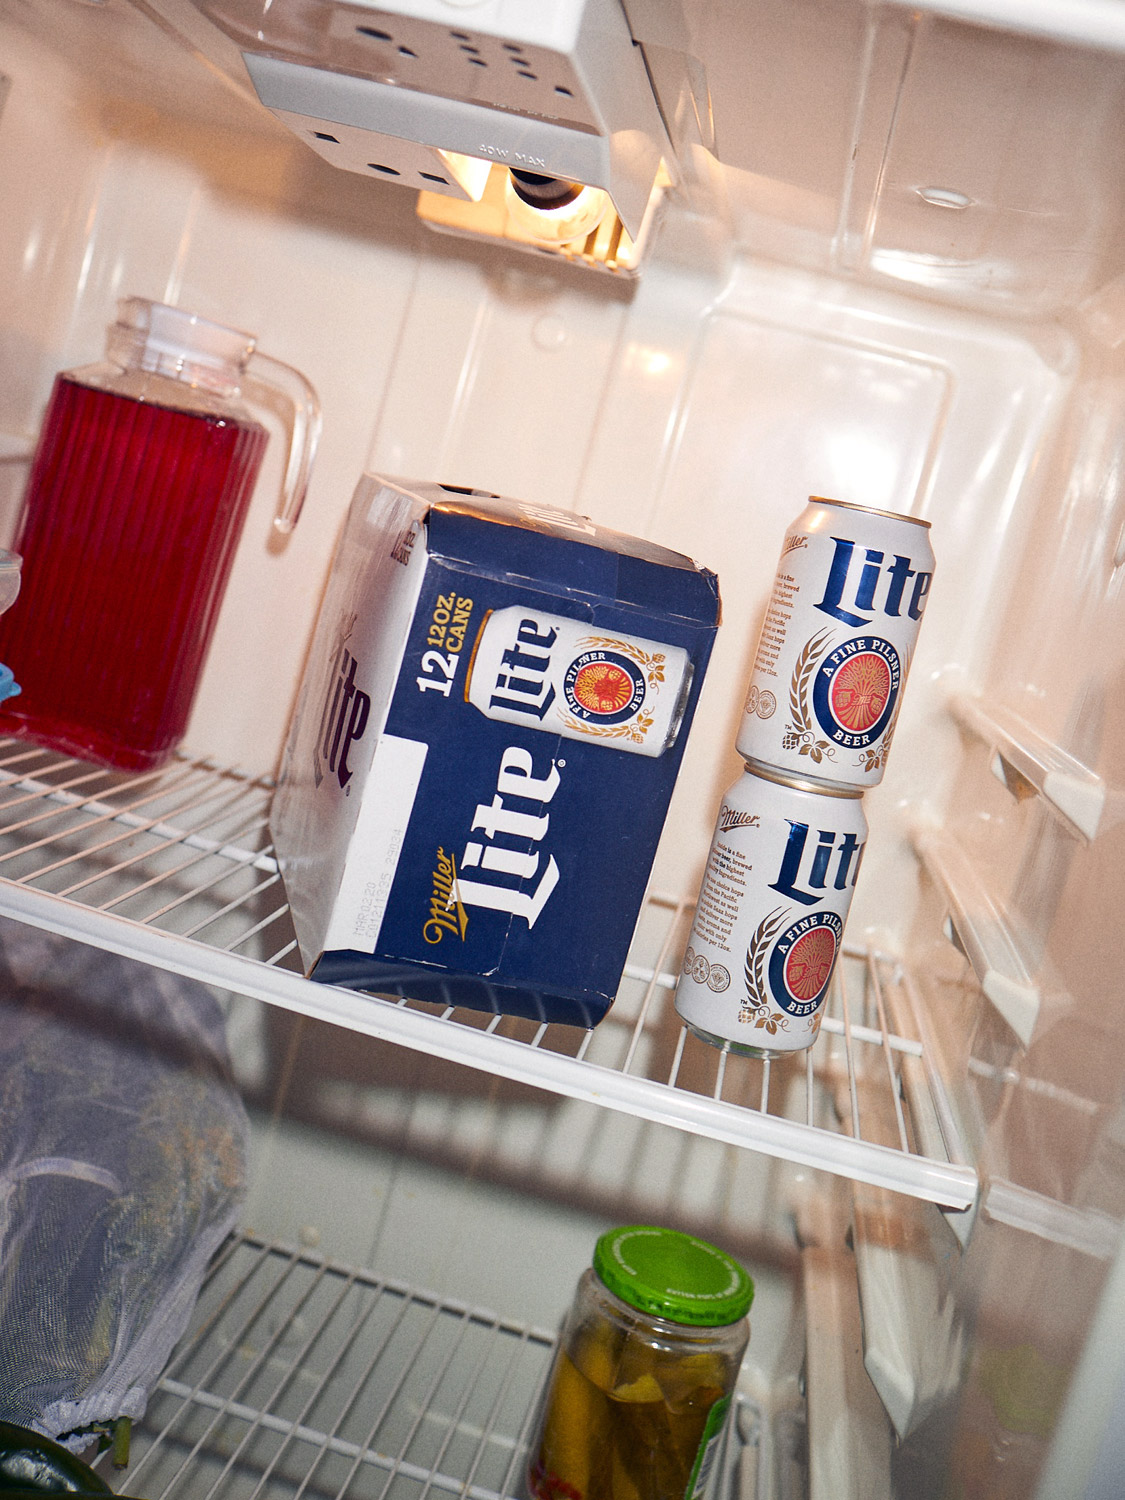 191217_Sorg_MillerLite_Kitchen_0557